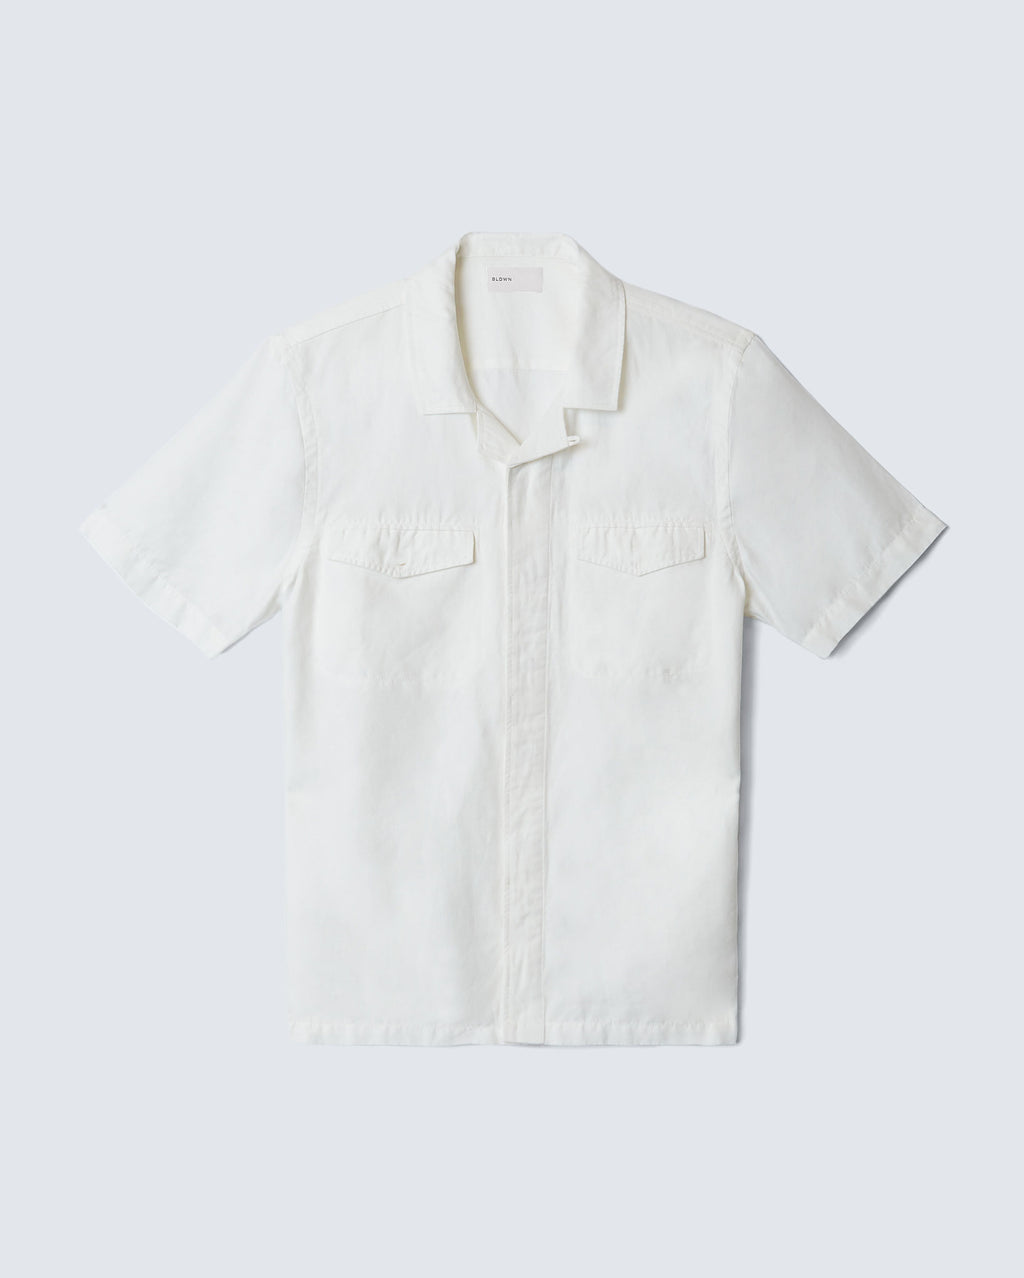 The Cokas Shirt in White